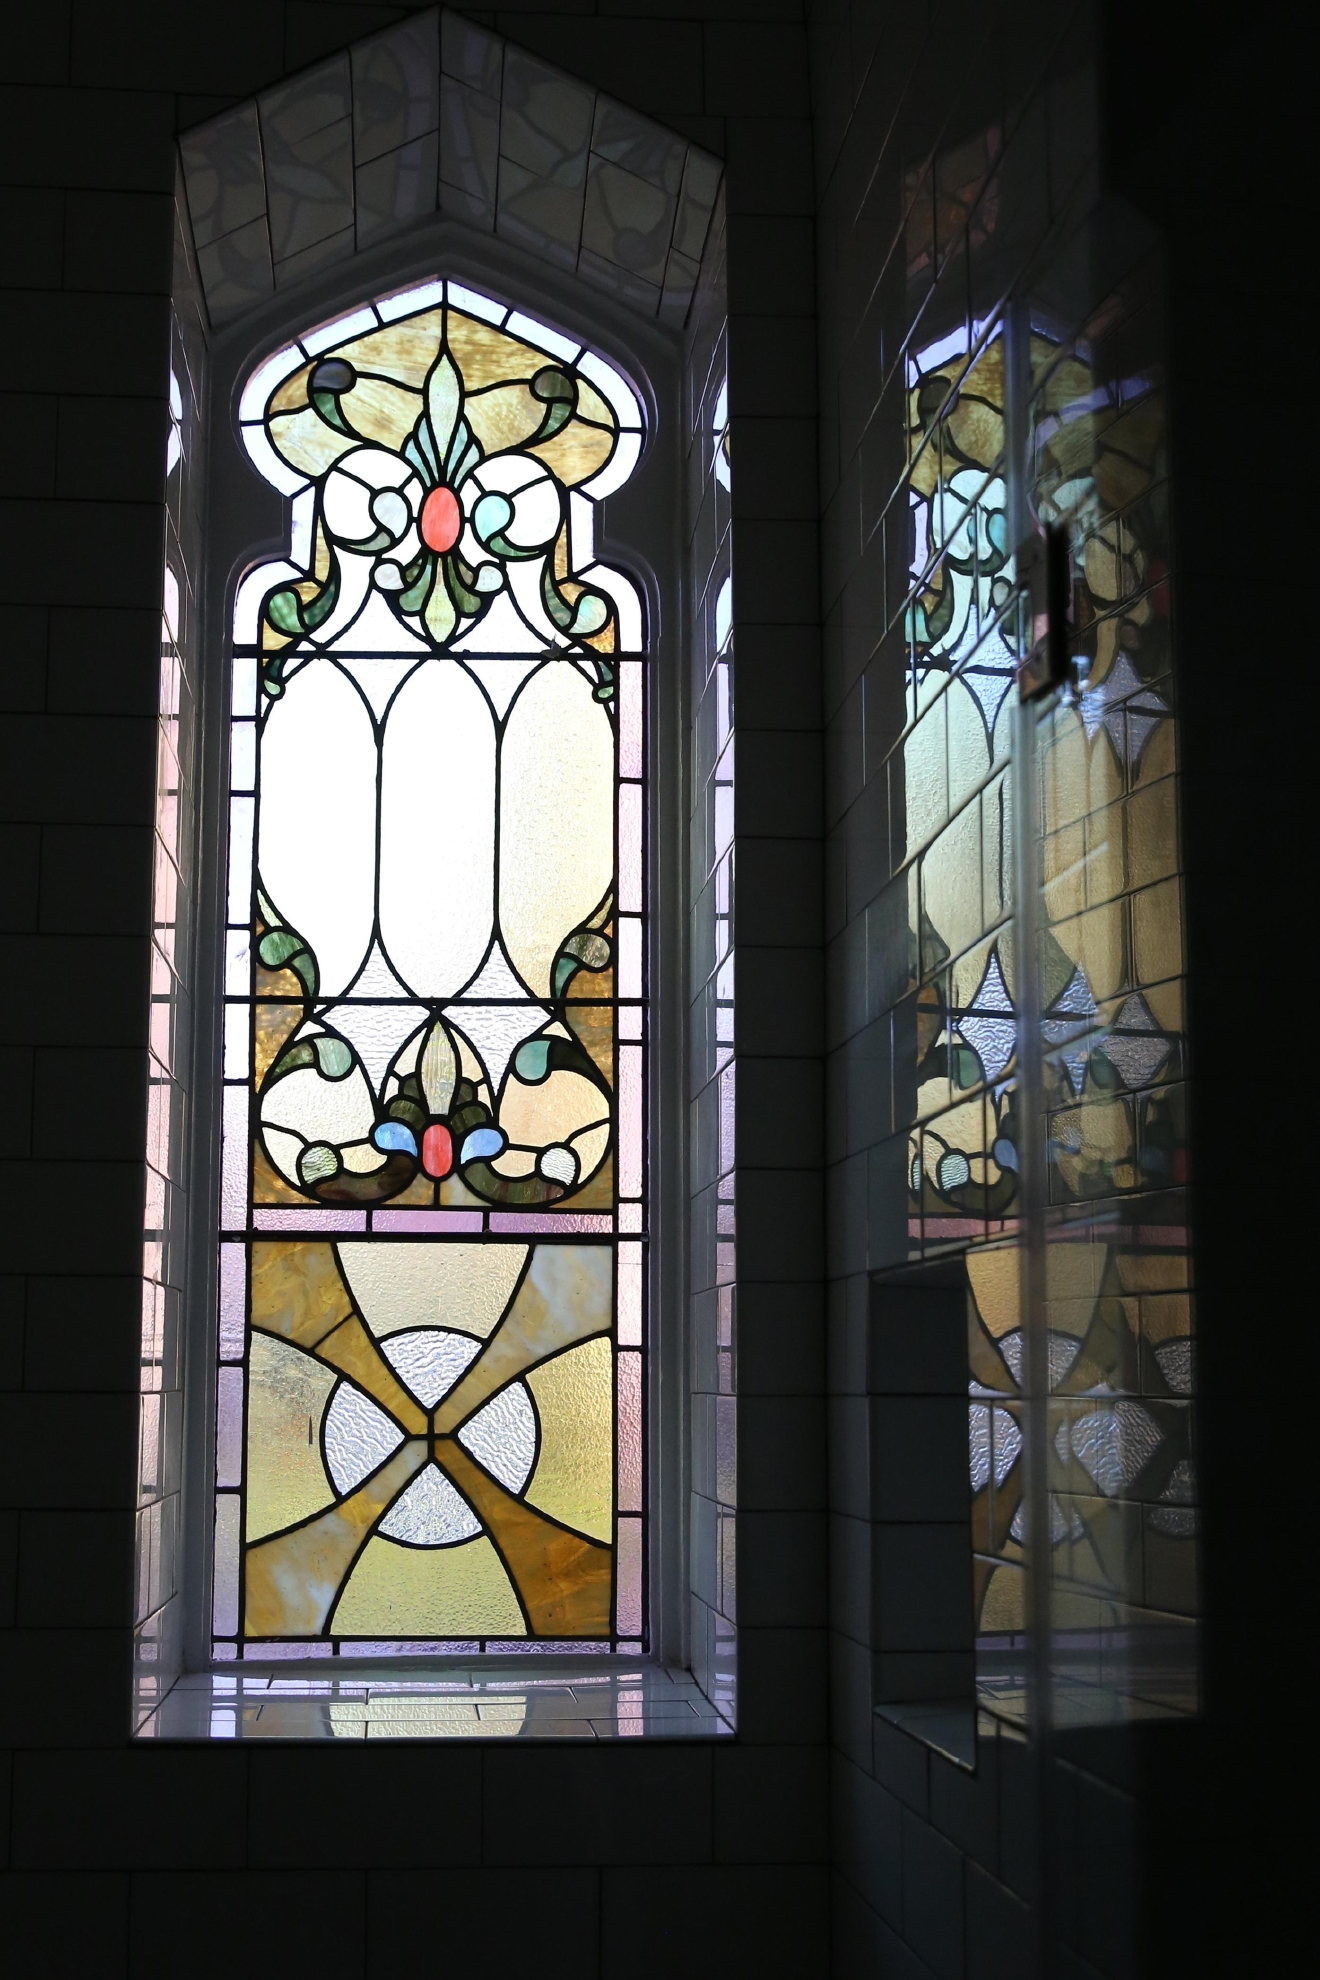 When the congregation of the Way of the Cross Church of Christ on Capitol Hill outgrew its 119-year-old church, The Rubin Group took a leap of faith and converted the building to a 30-unit condominium. Founder Andrew Rubin says he intentionally kept some of the church's elements intact, like the painstakingly restored stained glass windows. The project is slated to be completed next week, but most of the condos, which range from $300,000s to a $1.7 million penthouse, have been sold.  (Amanda Andrade-Rhoades/DC Refined)